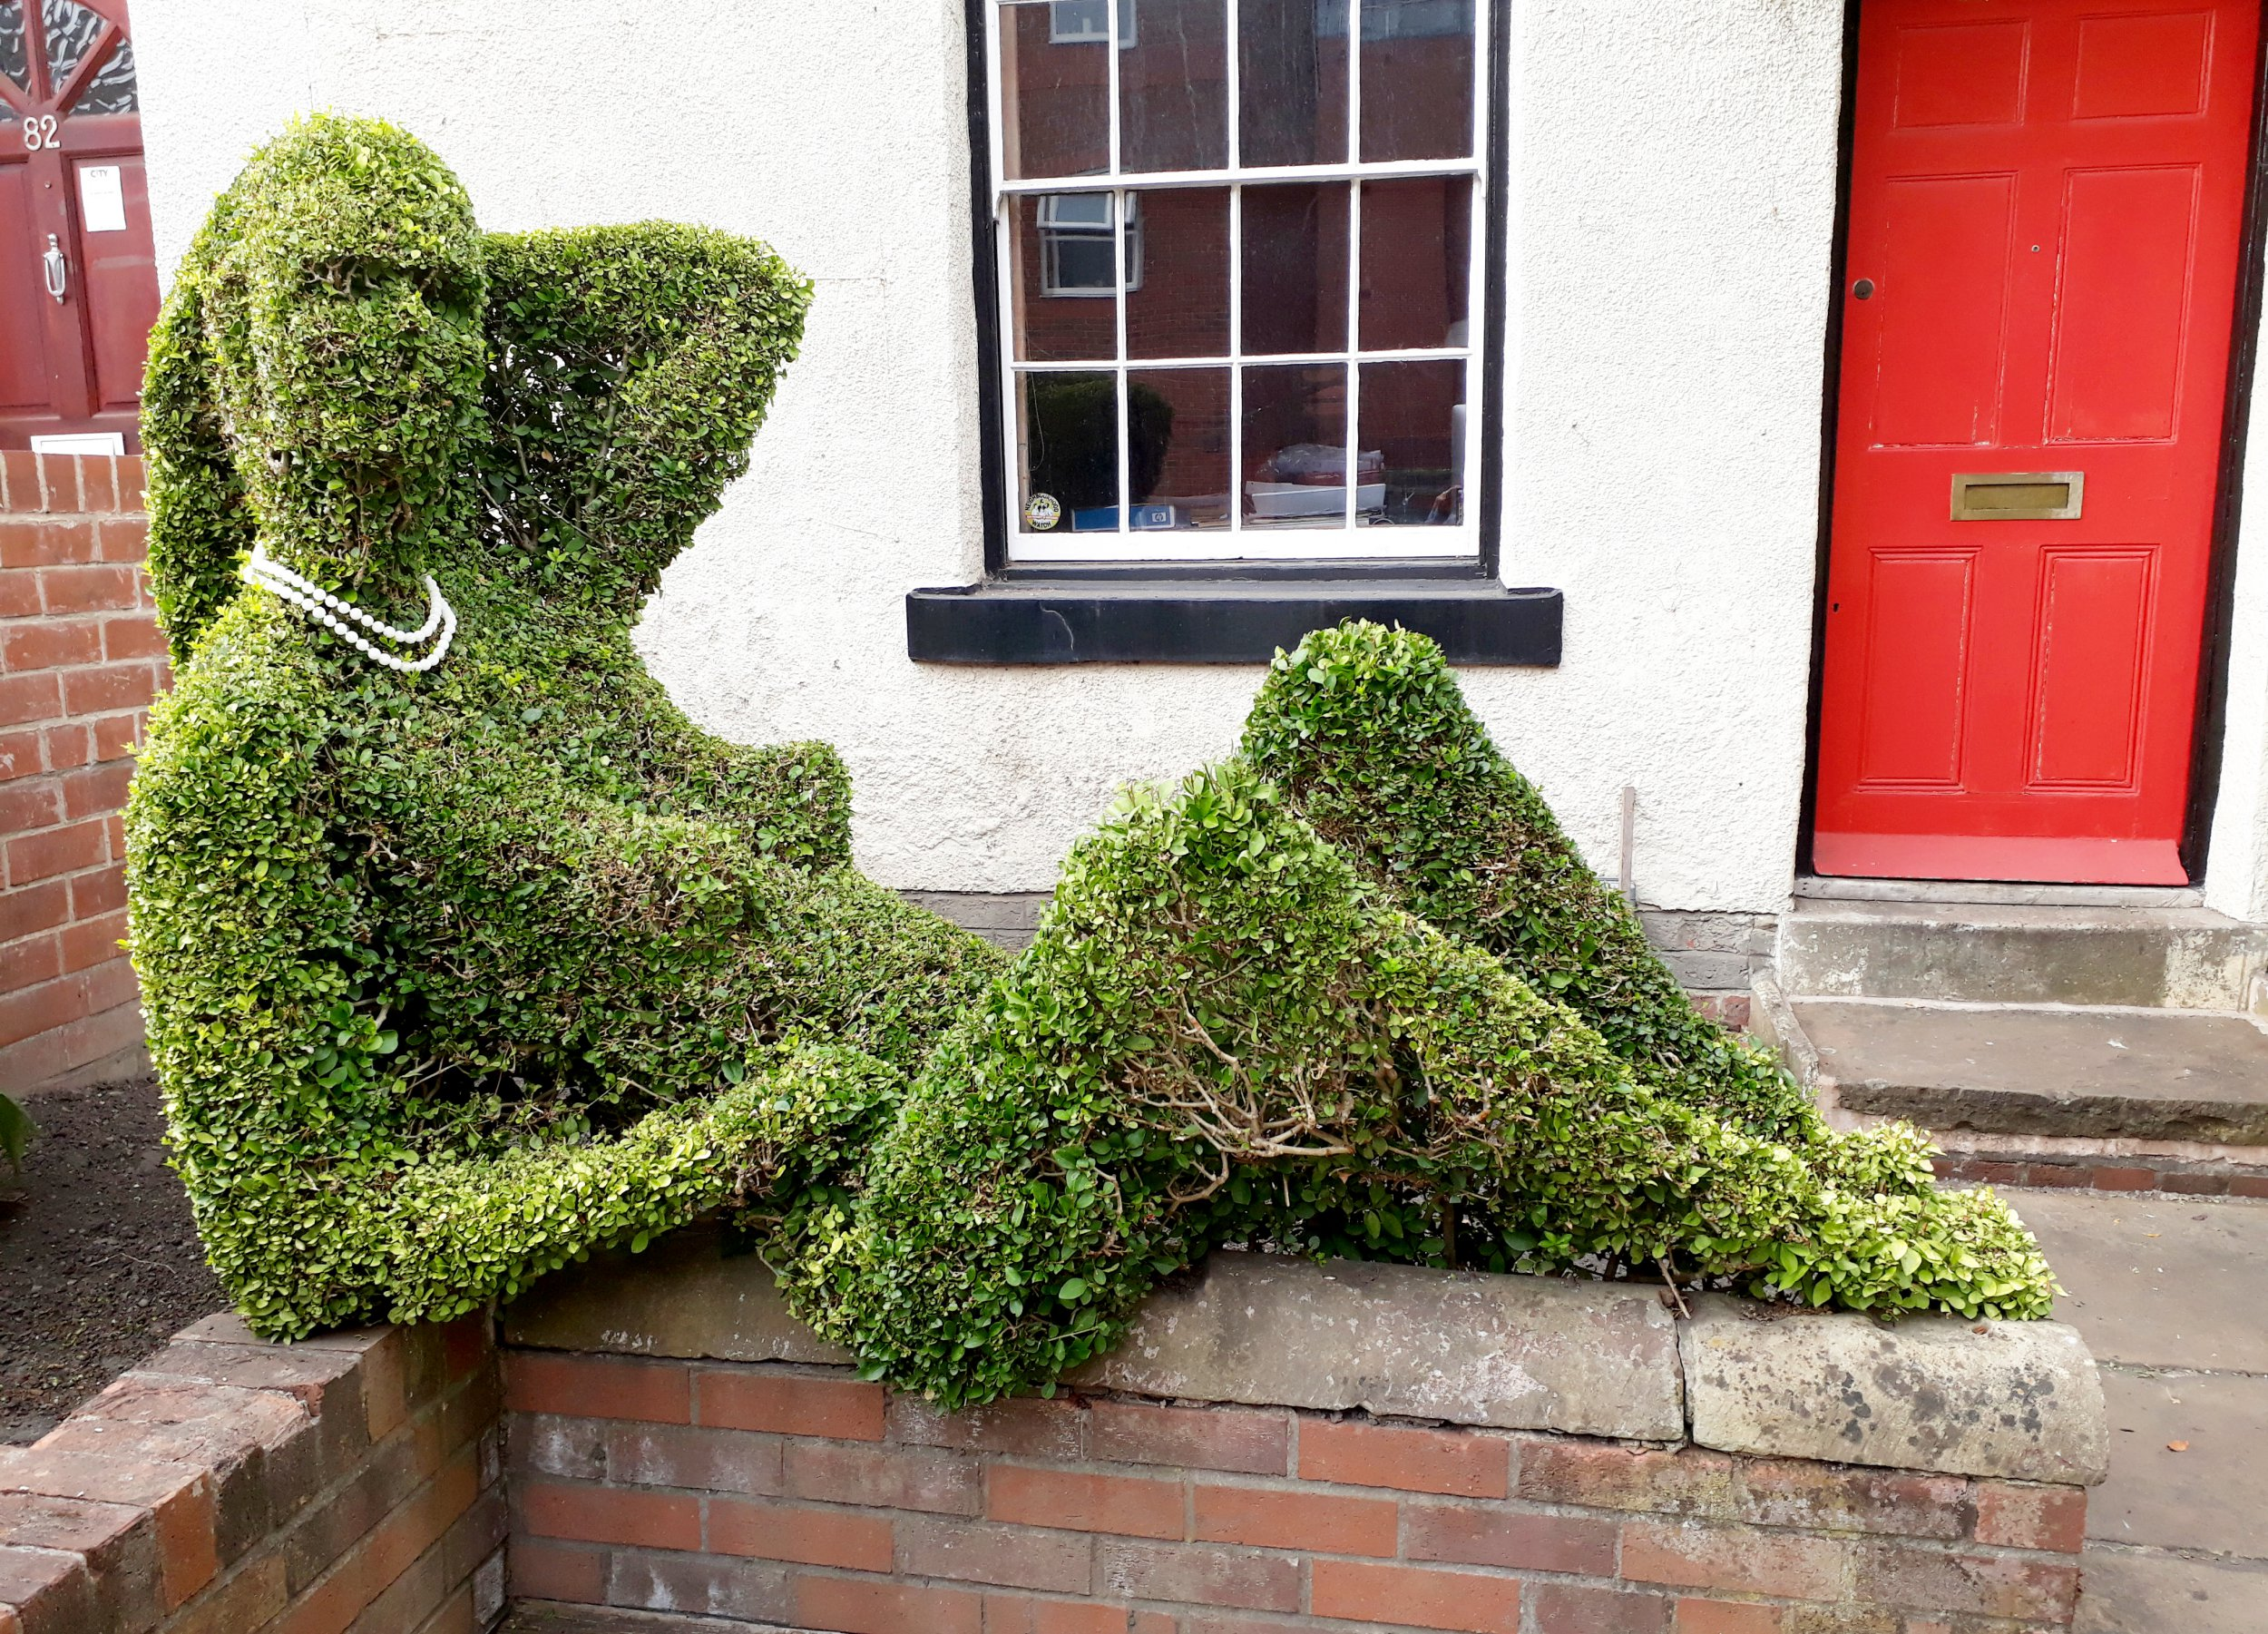 "A topiarist says he is having to make regular repairs to his hedge due to drunk people pretending to have sex with it. See ROSS PARRY story RPYHEDGE. Keith Tyssen has maintained his ""privet lady"" at his Sheffield home since 2000, but is often woken up in the night by distracted passers-by. ""They're climbing on top of her and pulling her legs apart - you know, it's disgusting,"" he said. Mr Tyssen has considered putting up a sign or an alarm to curb the behaviour. The hedge, which he has sculpted over the past 40 years, started off as a Greek god but he changed it into a reclining woman at the turn of the millennium."